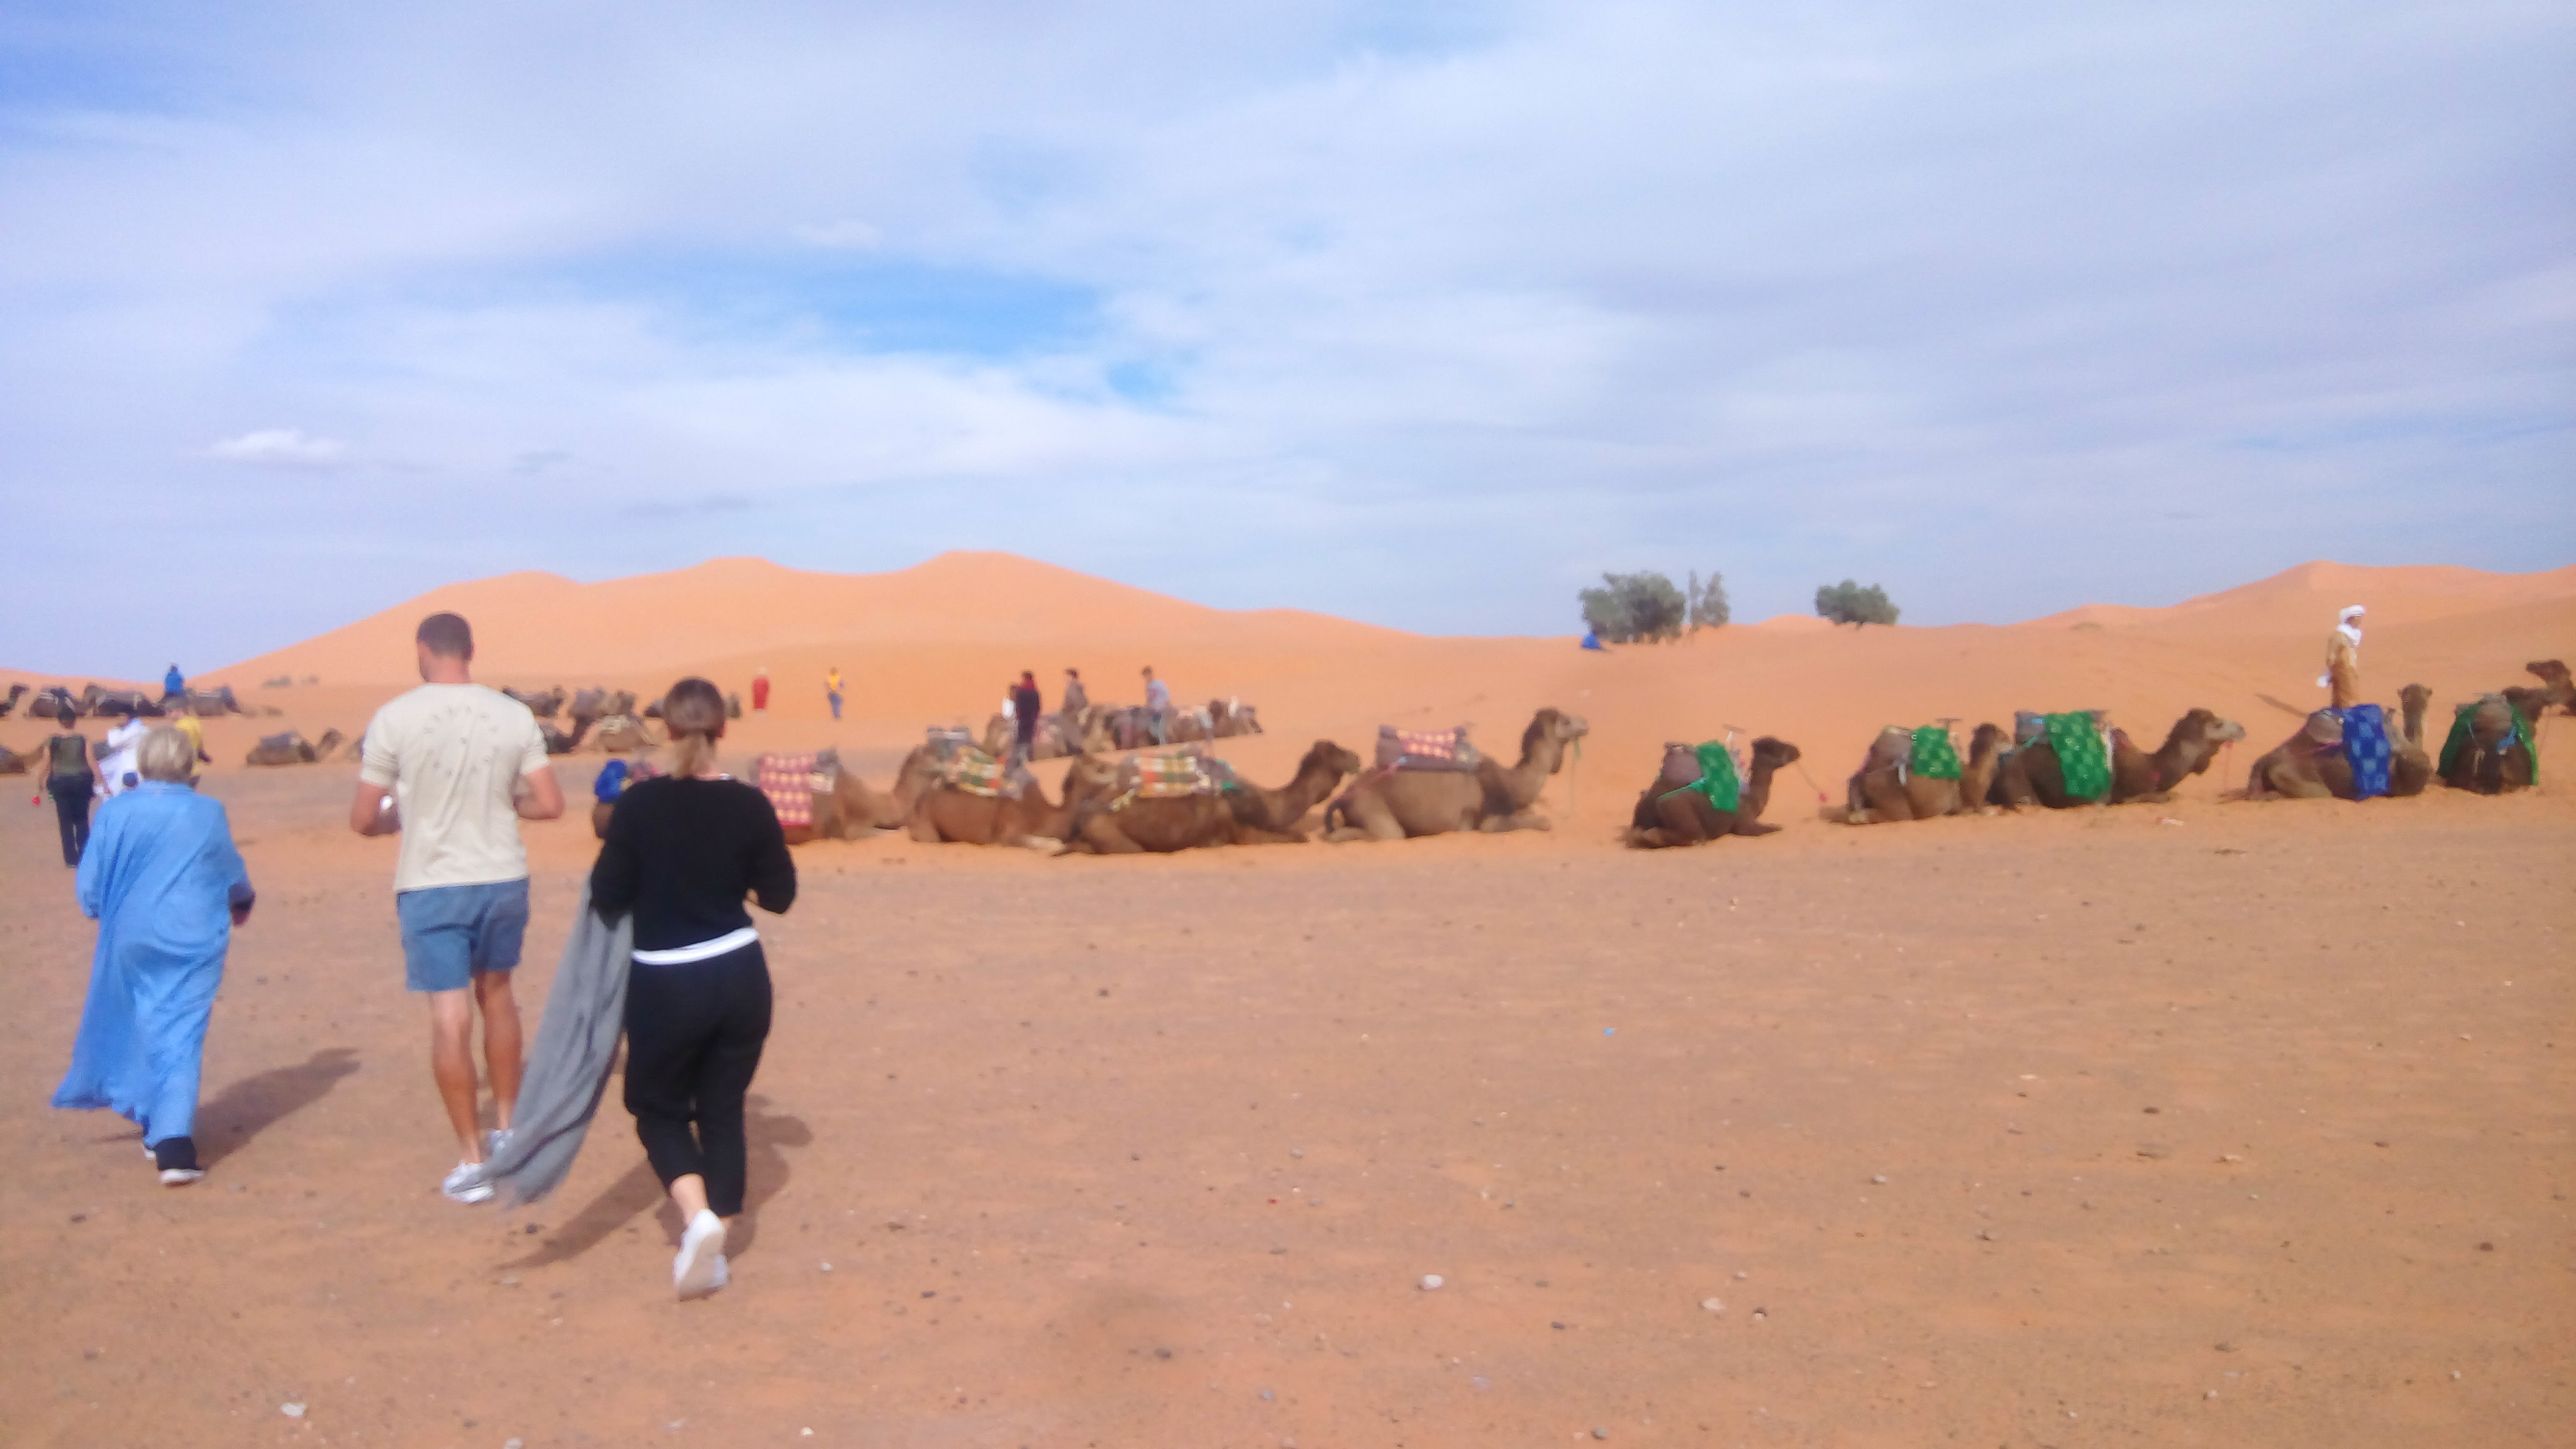 Guests heading for Camel ride